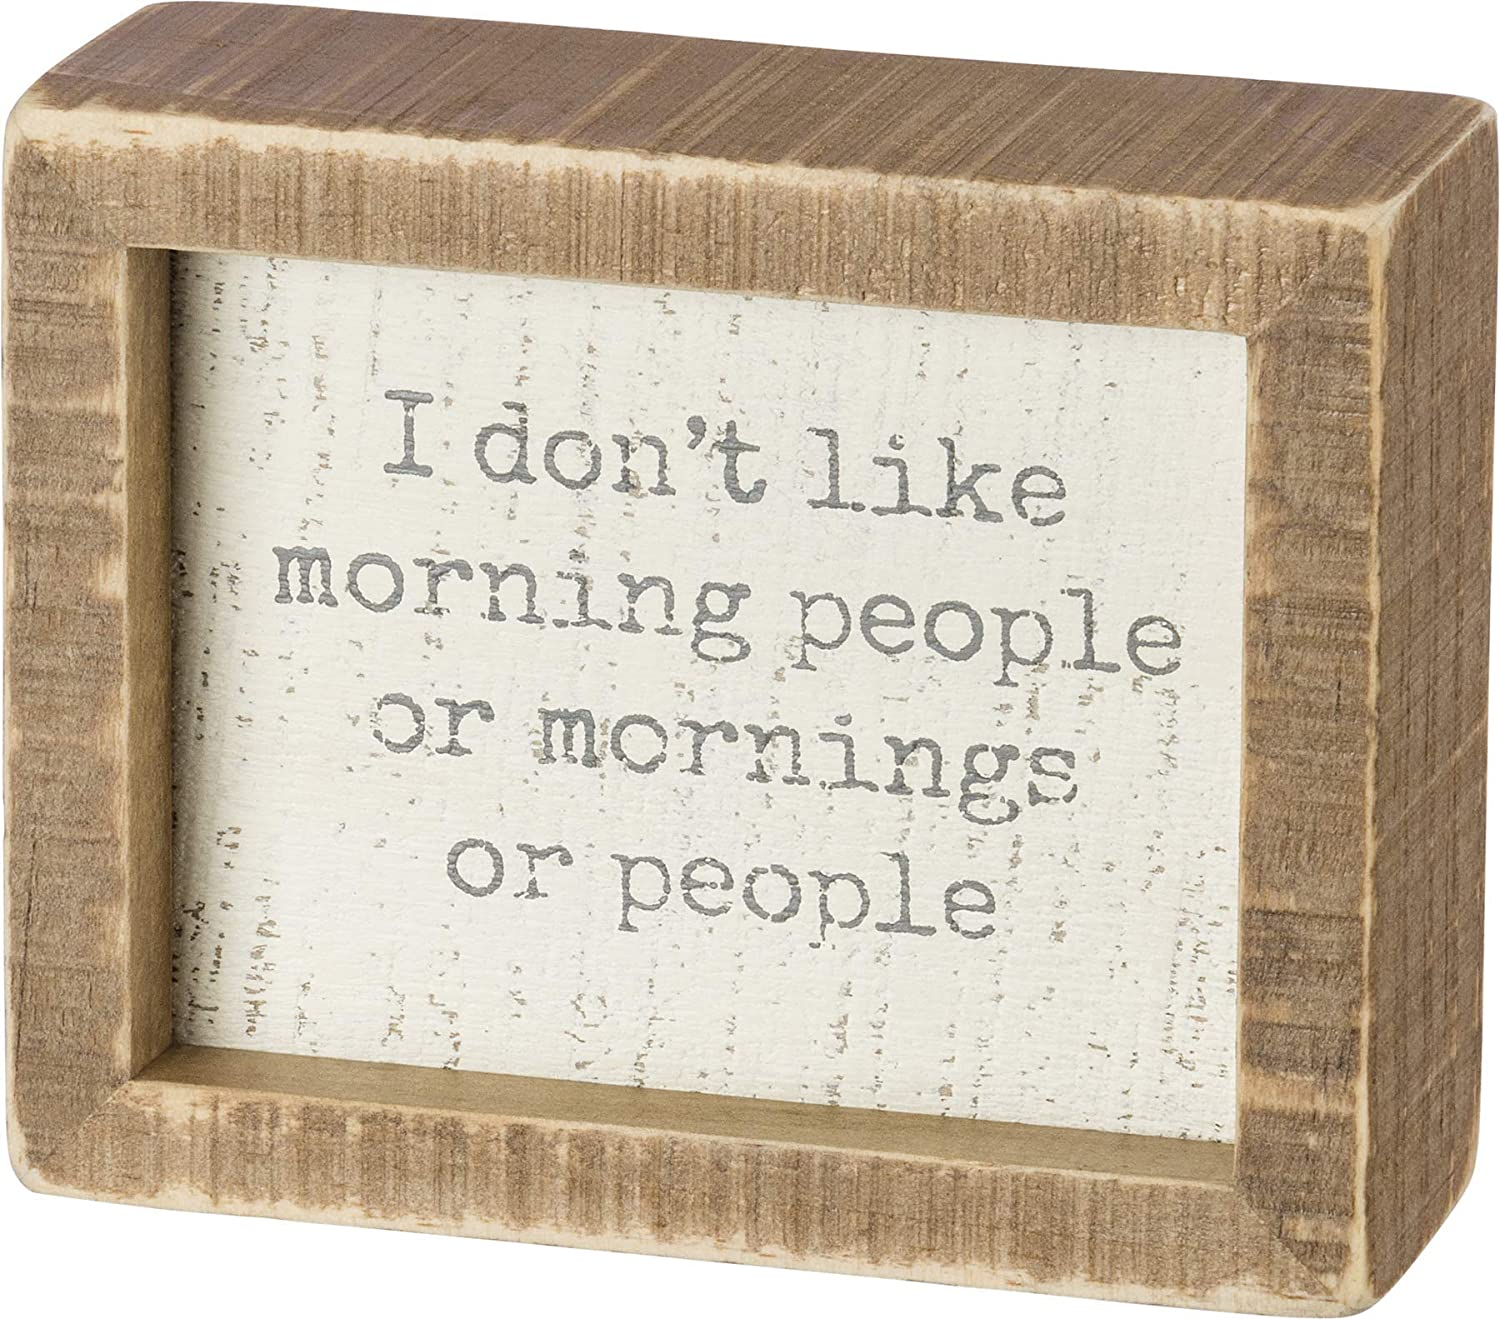 Primitives by Kathy 38486 Inset Box Sign, I Don't Like Morning People